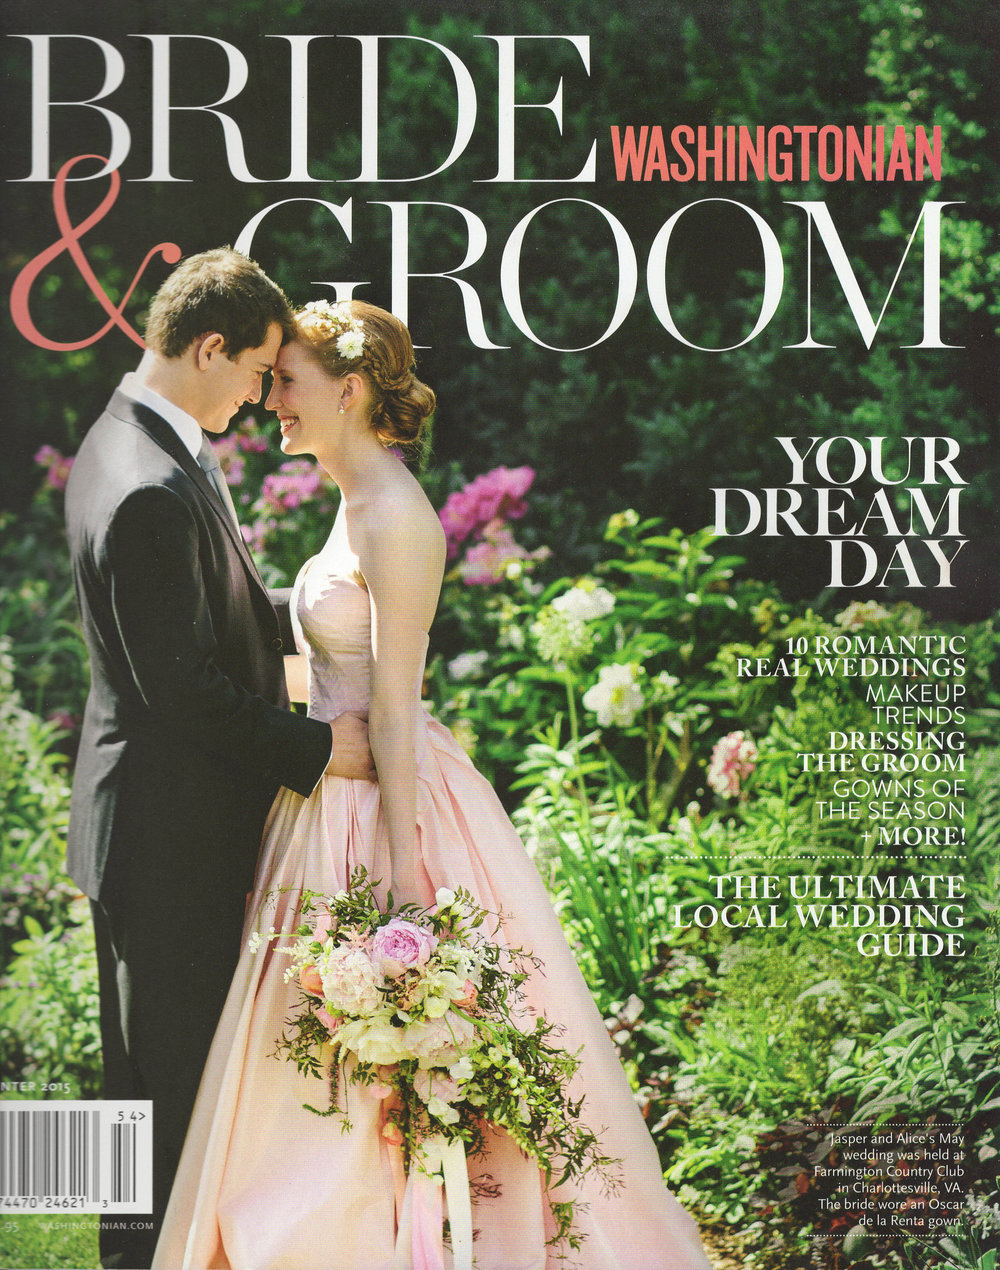 Washingtonian Bride & Groom 4.jpg